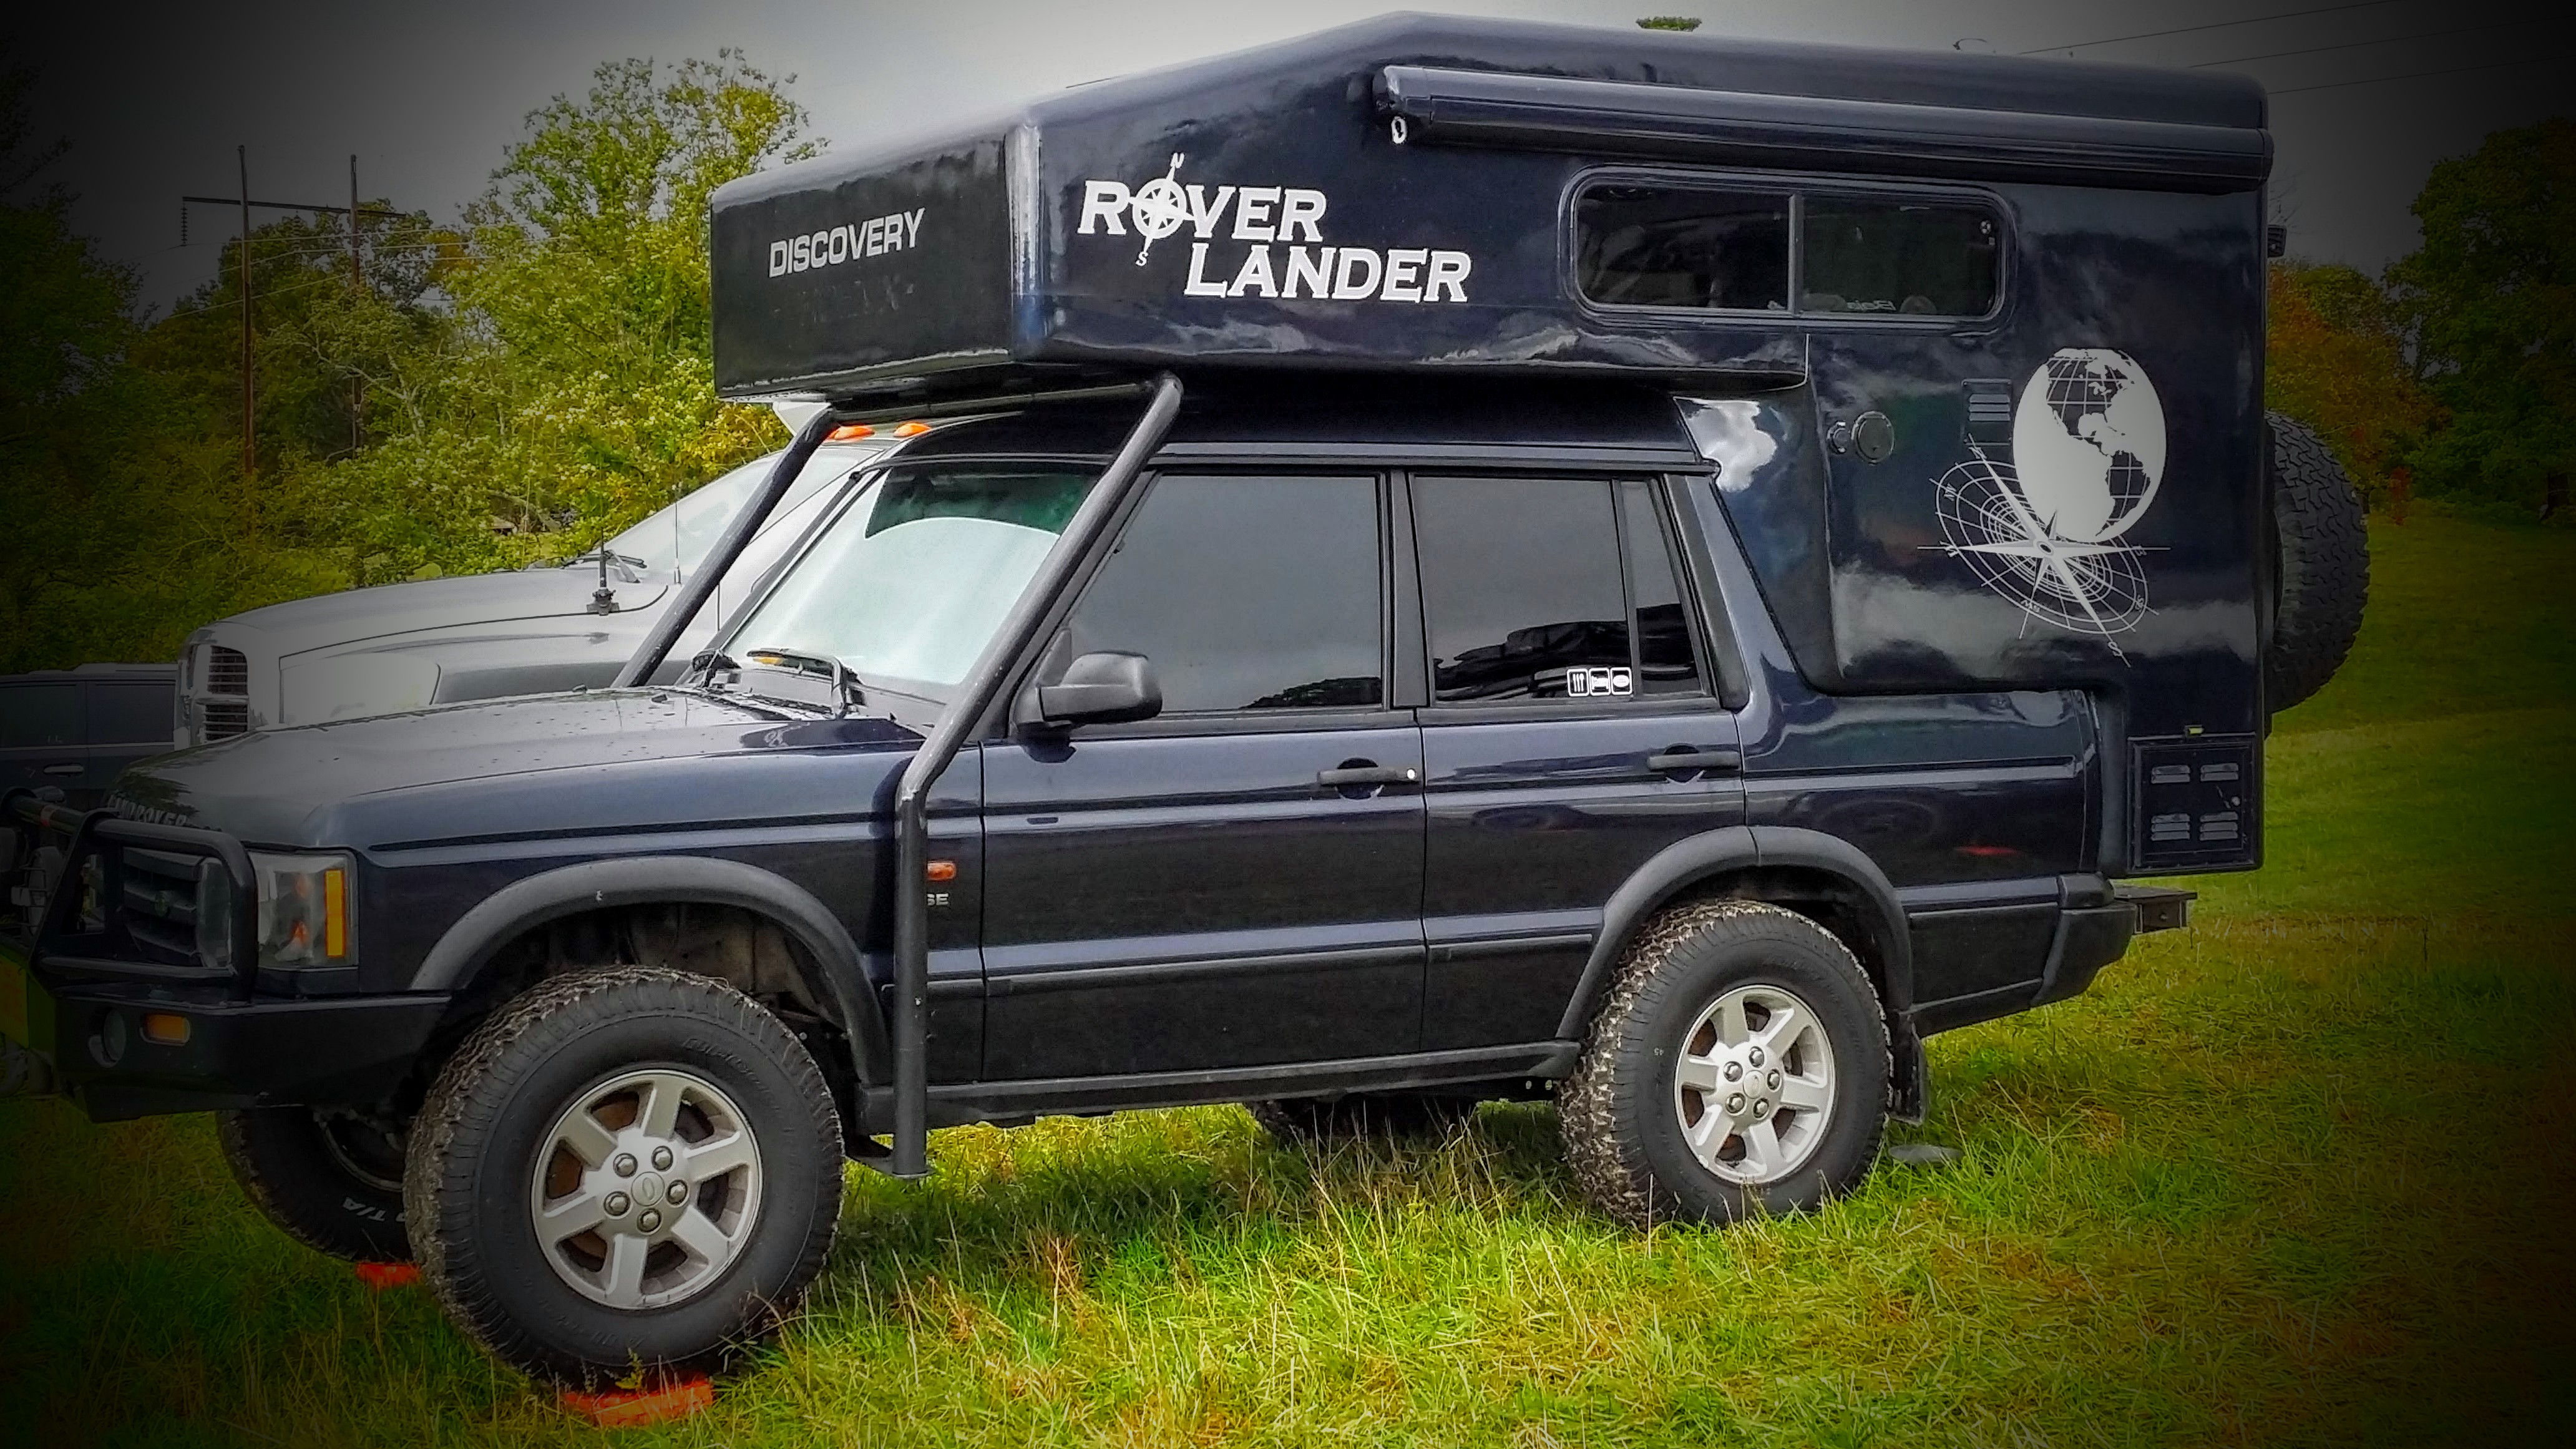 Choosing the ultimate overland expedition camper